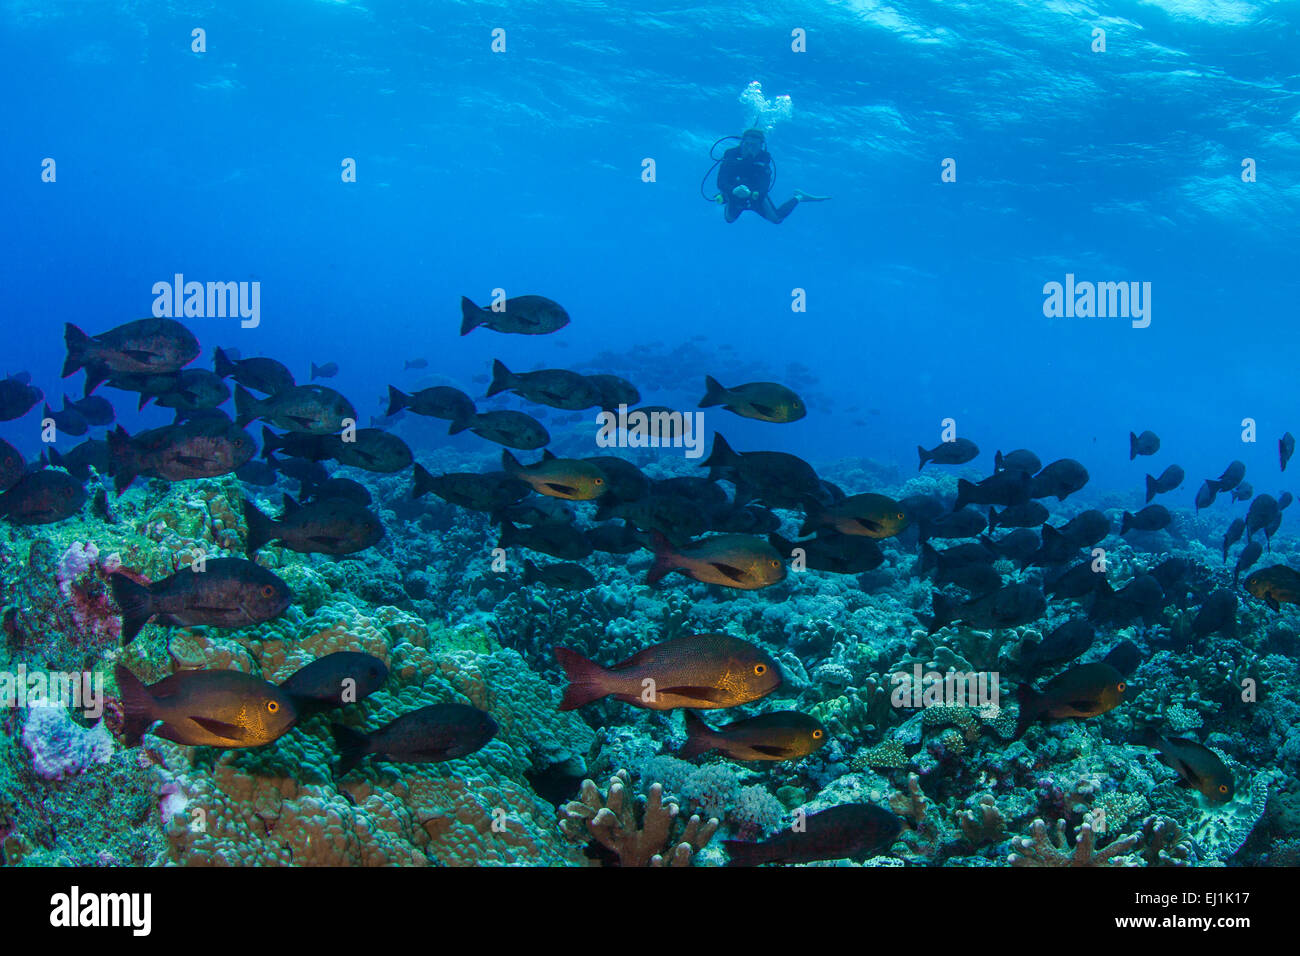 Scuba diver observes school of Midnight Snappers (Macolor macularis); Spratly Islands, South China Sea. - Stock Image